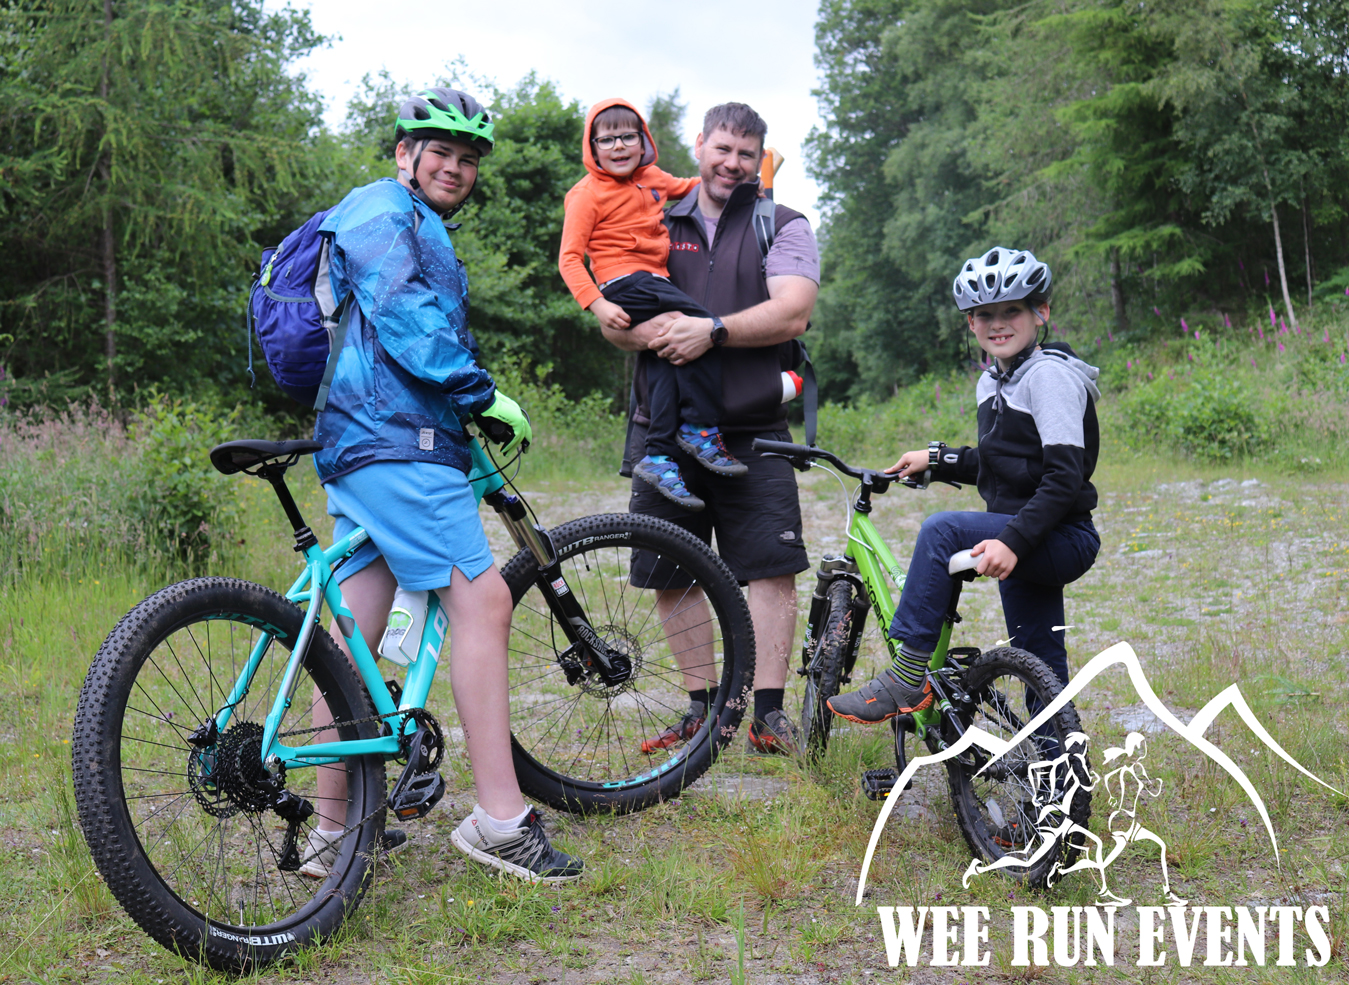 Image: Wee Run Events Family